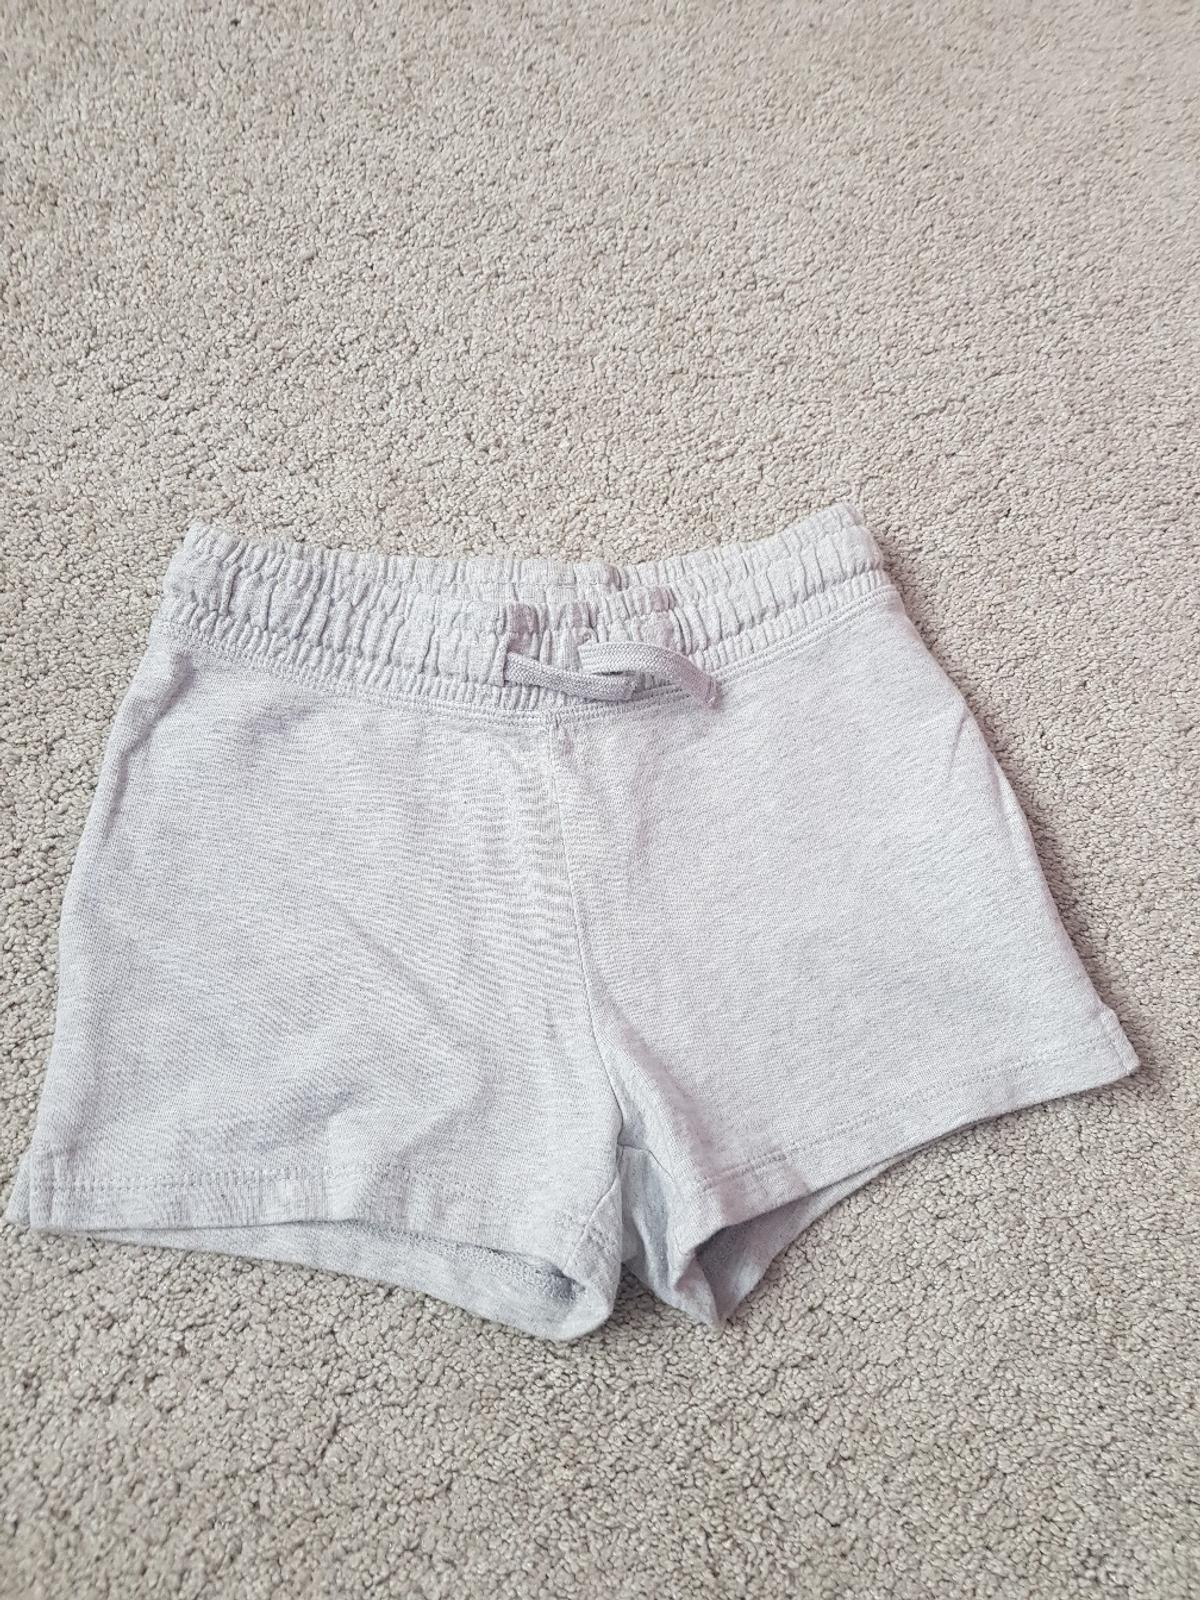 girls grey shorts. from Next. age 6years. sfs